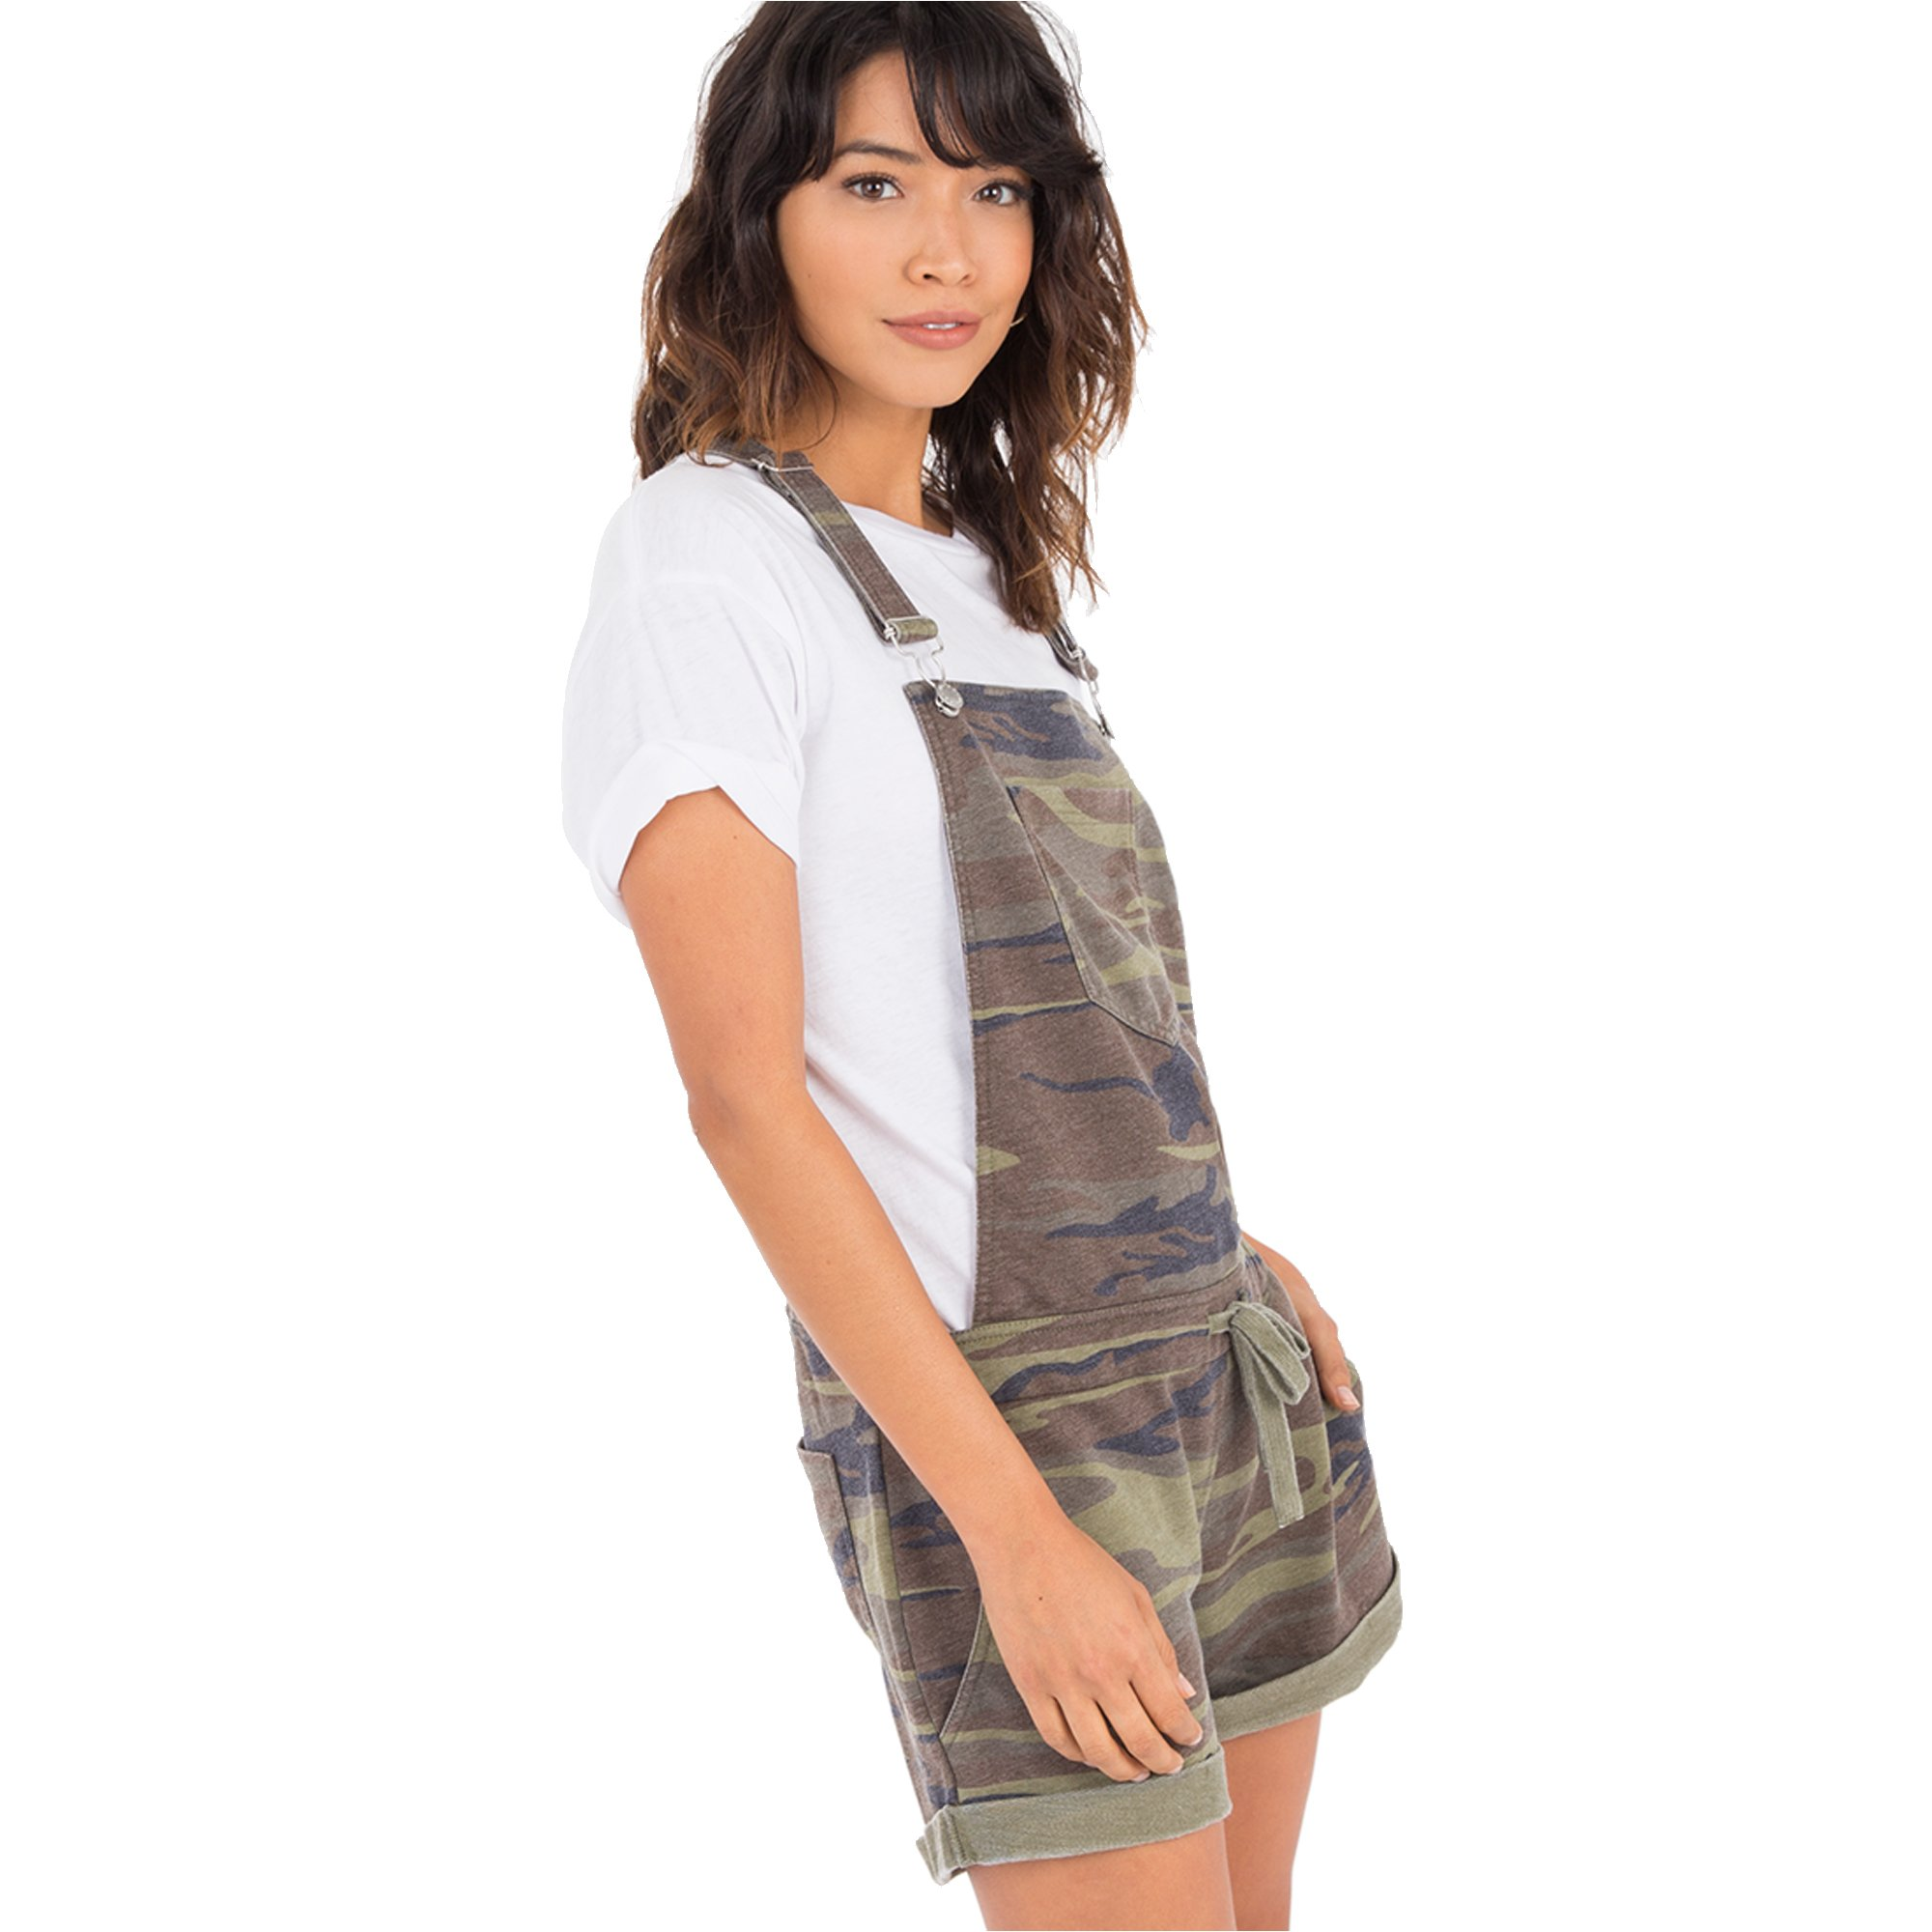 Z SUPPLY Women's The Camo Short Overalls, Camo Green, Medium